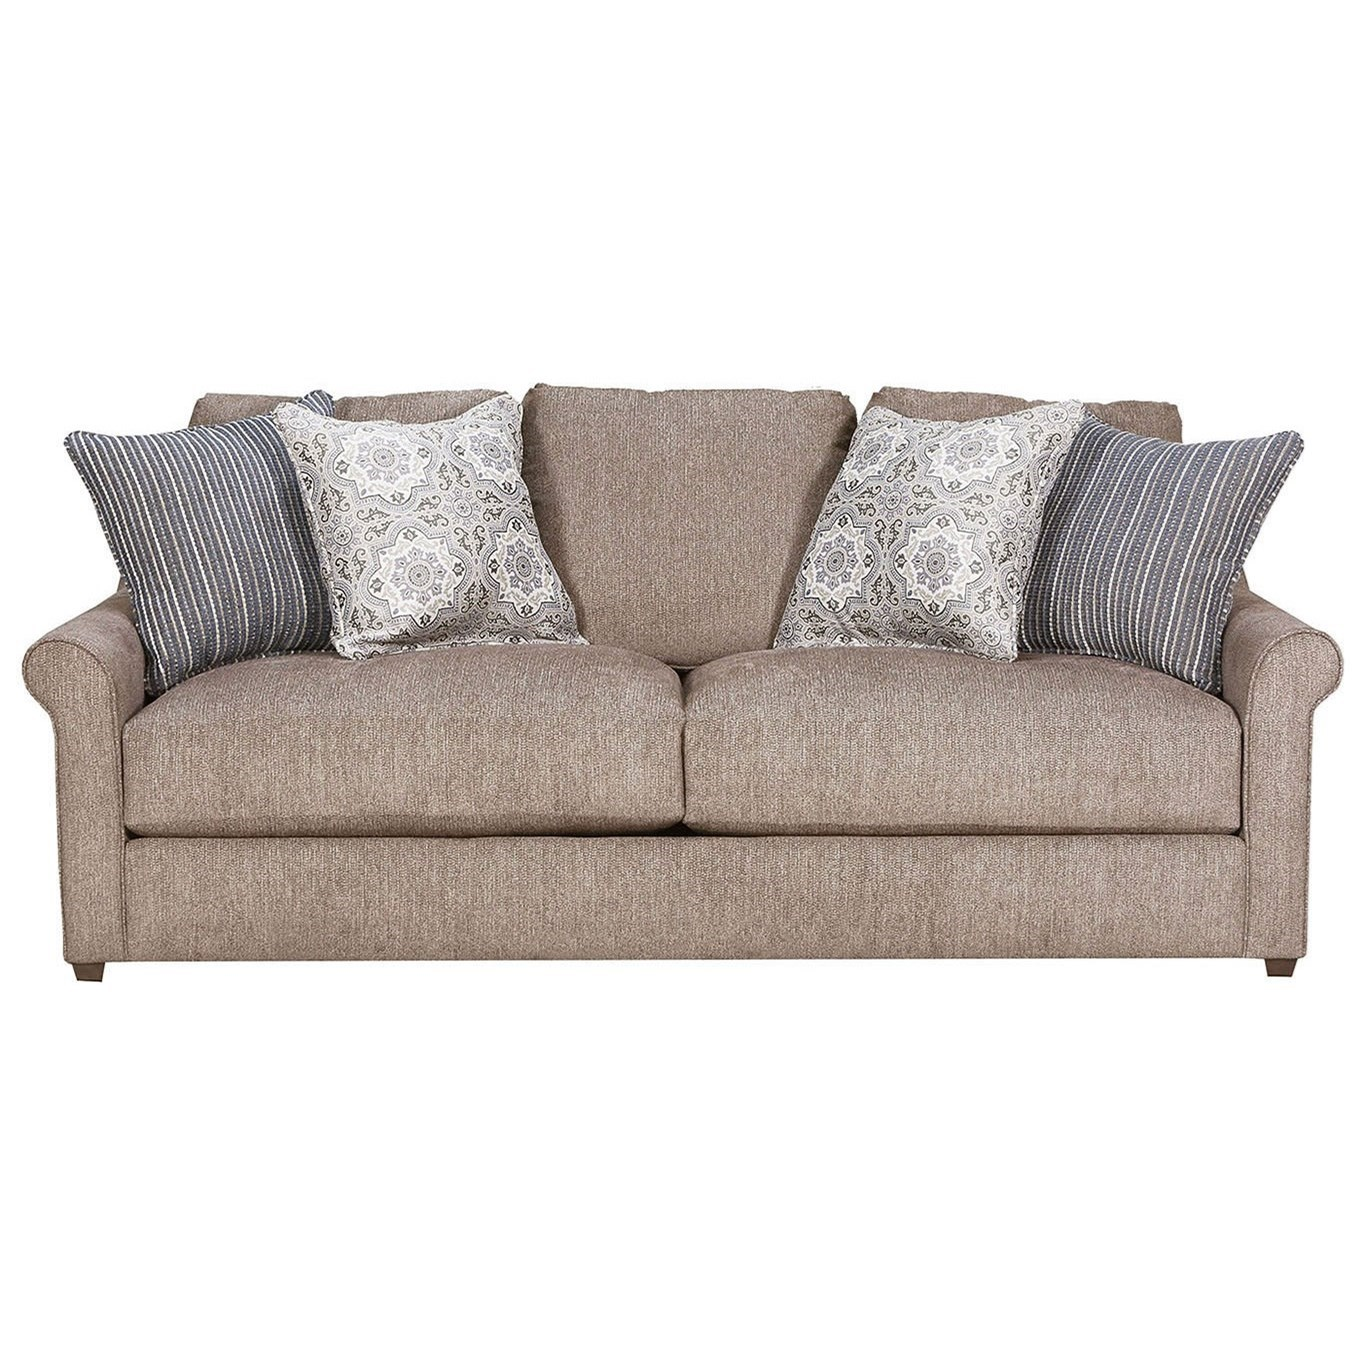 9910 Sofa by United Furniture Industries at Dream Home Interiors